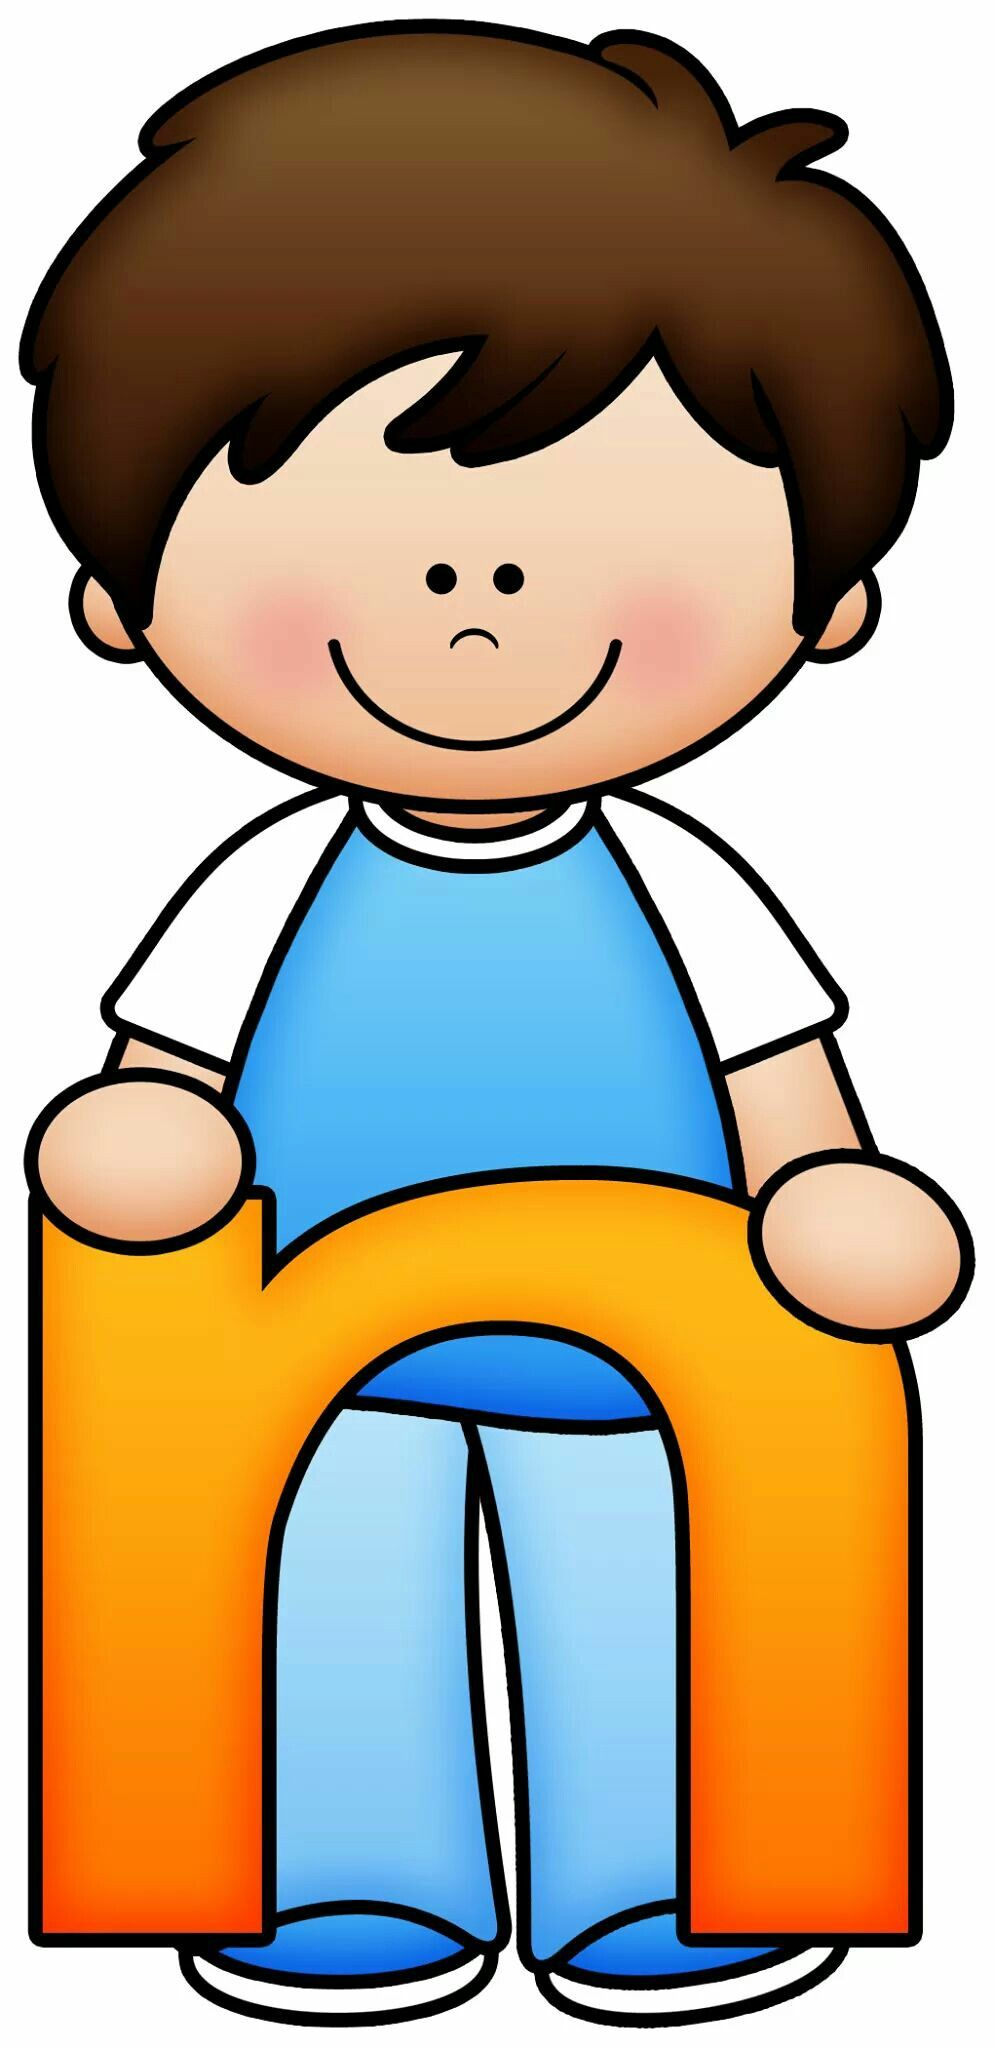 pin by silvializ soto on school clipart pinterest clip art and rh pinterest co uk preschool clip art pictures preschool clip art pictures